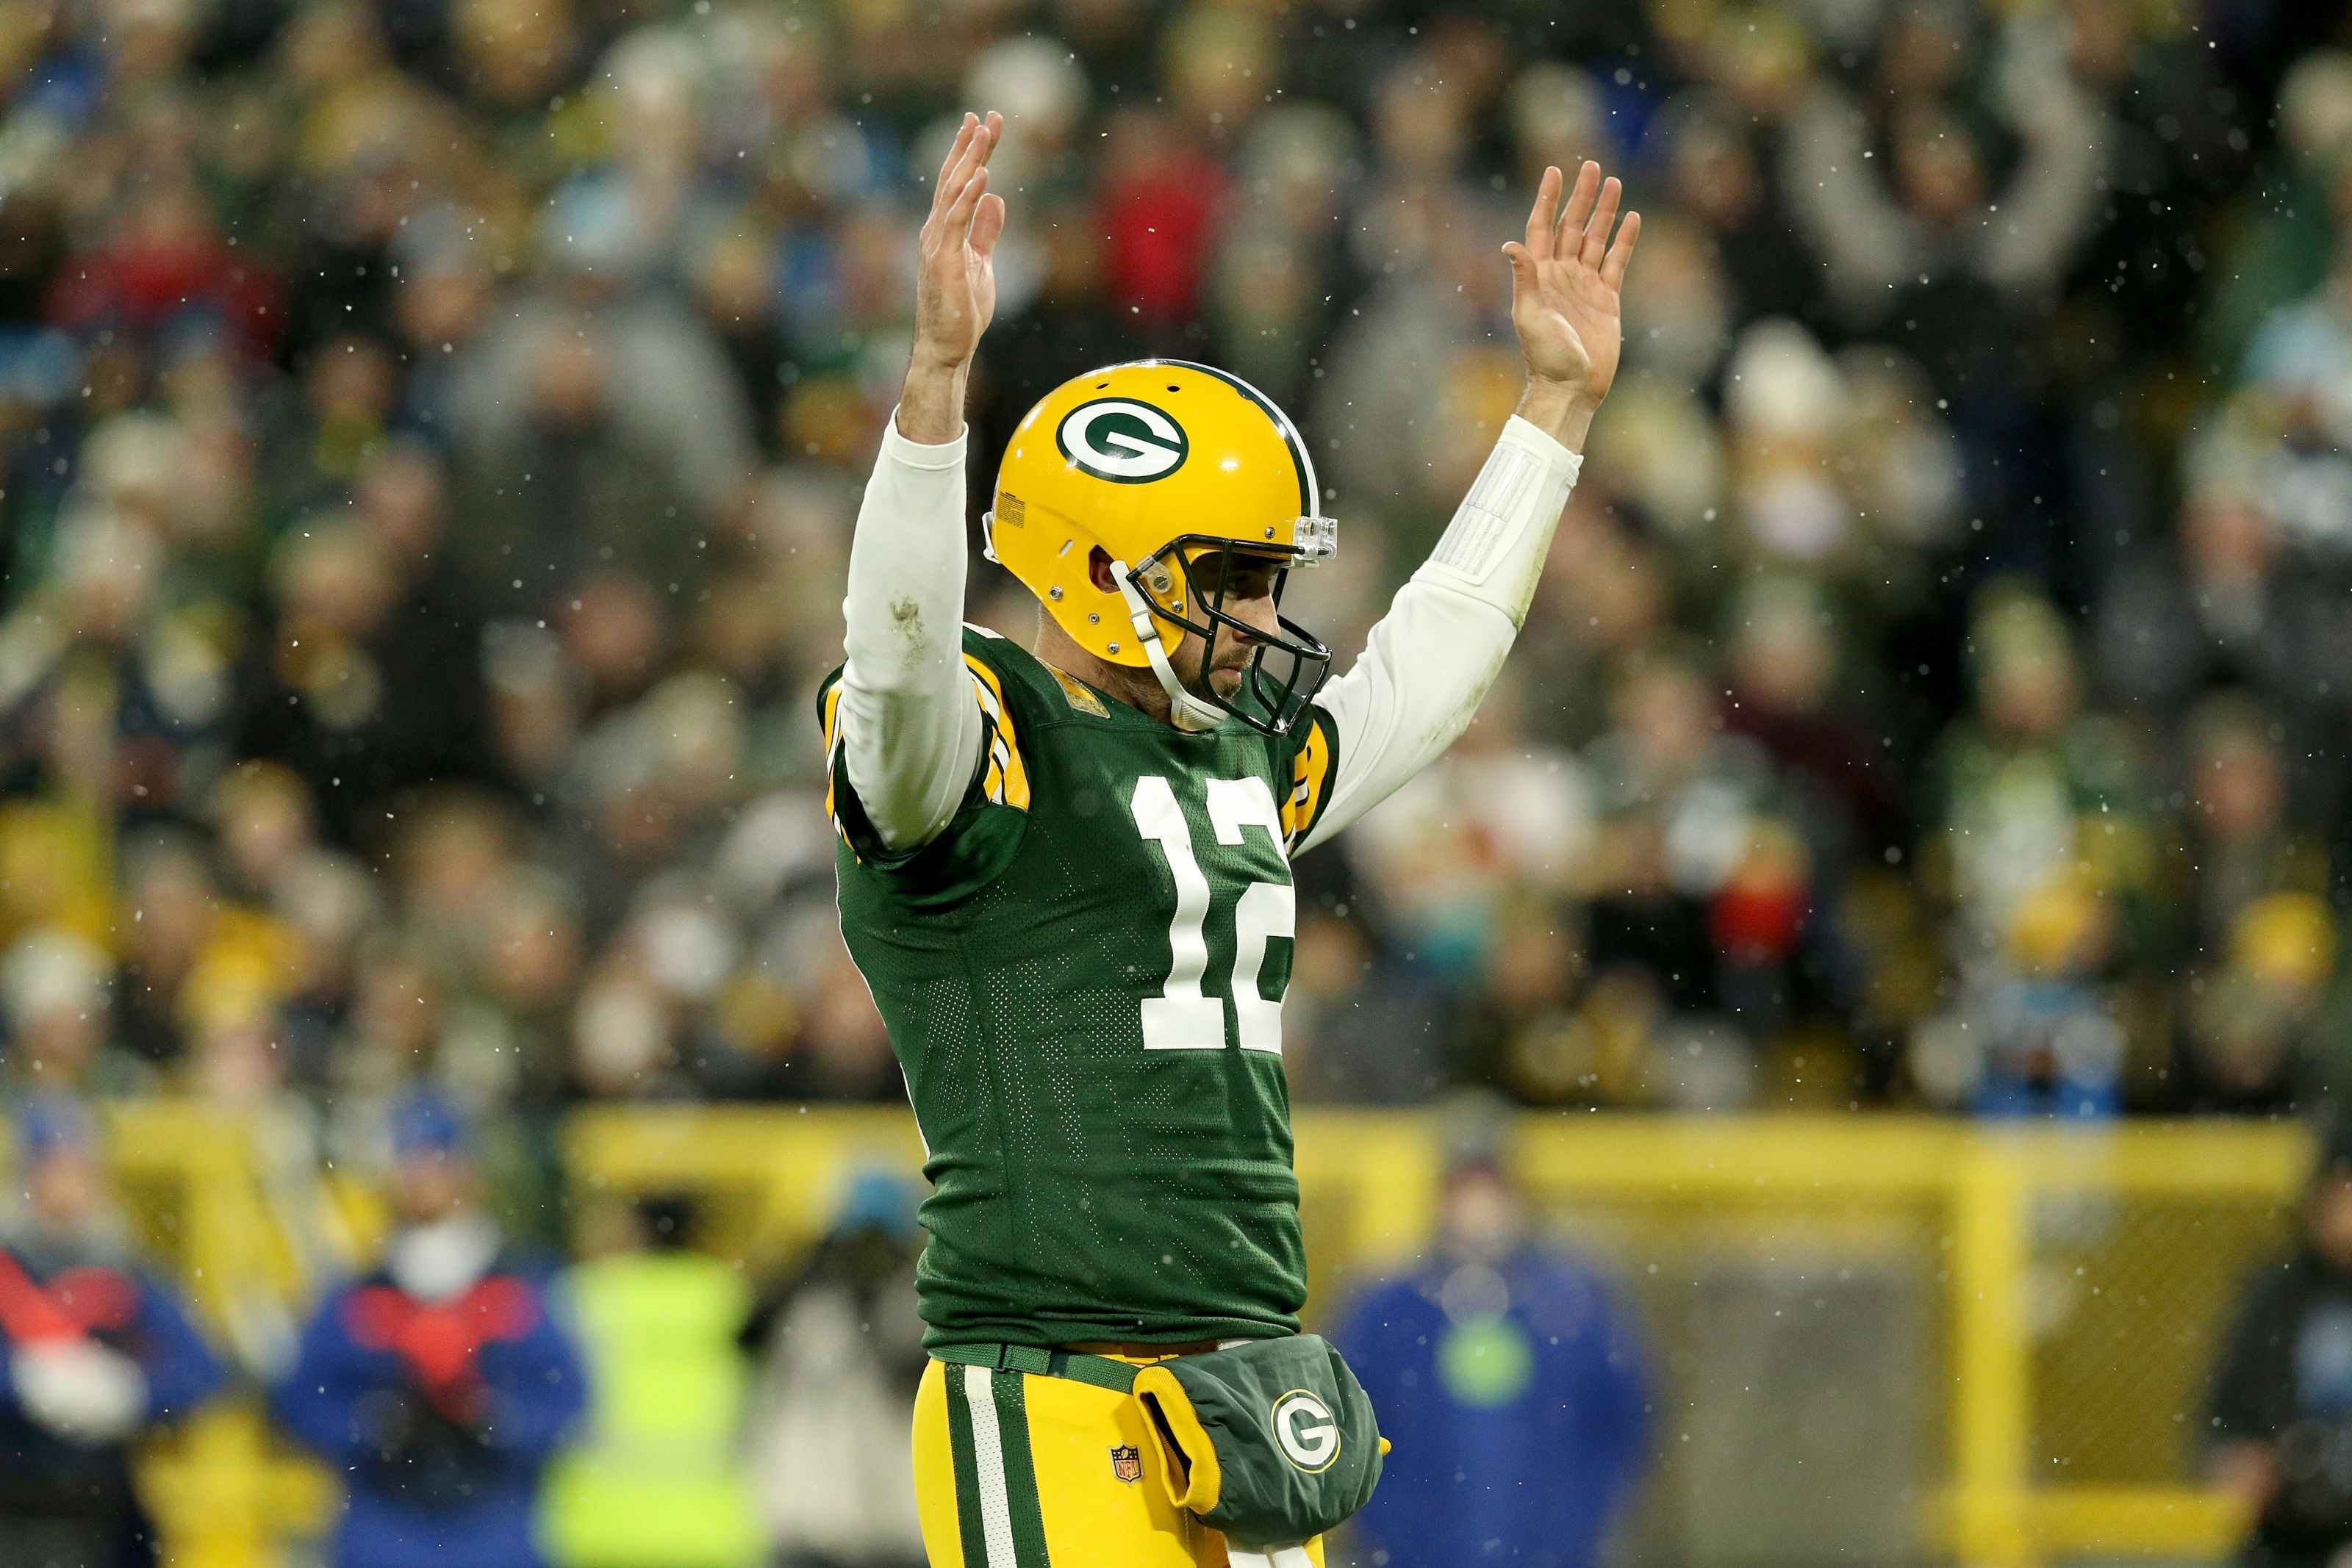 Packers Can Achieve Best Home Record Since 2014 With Win Vs Bears National Football League Green Bay Packers Carolina Panthers Team National Football League